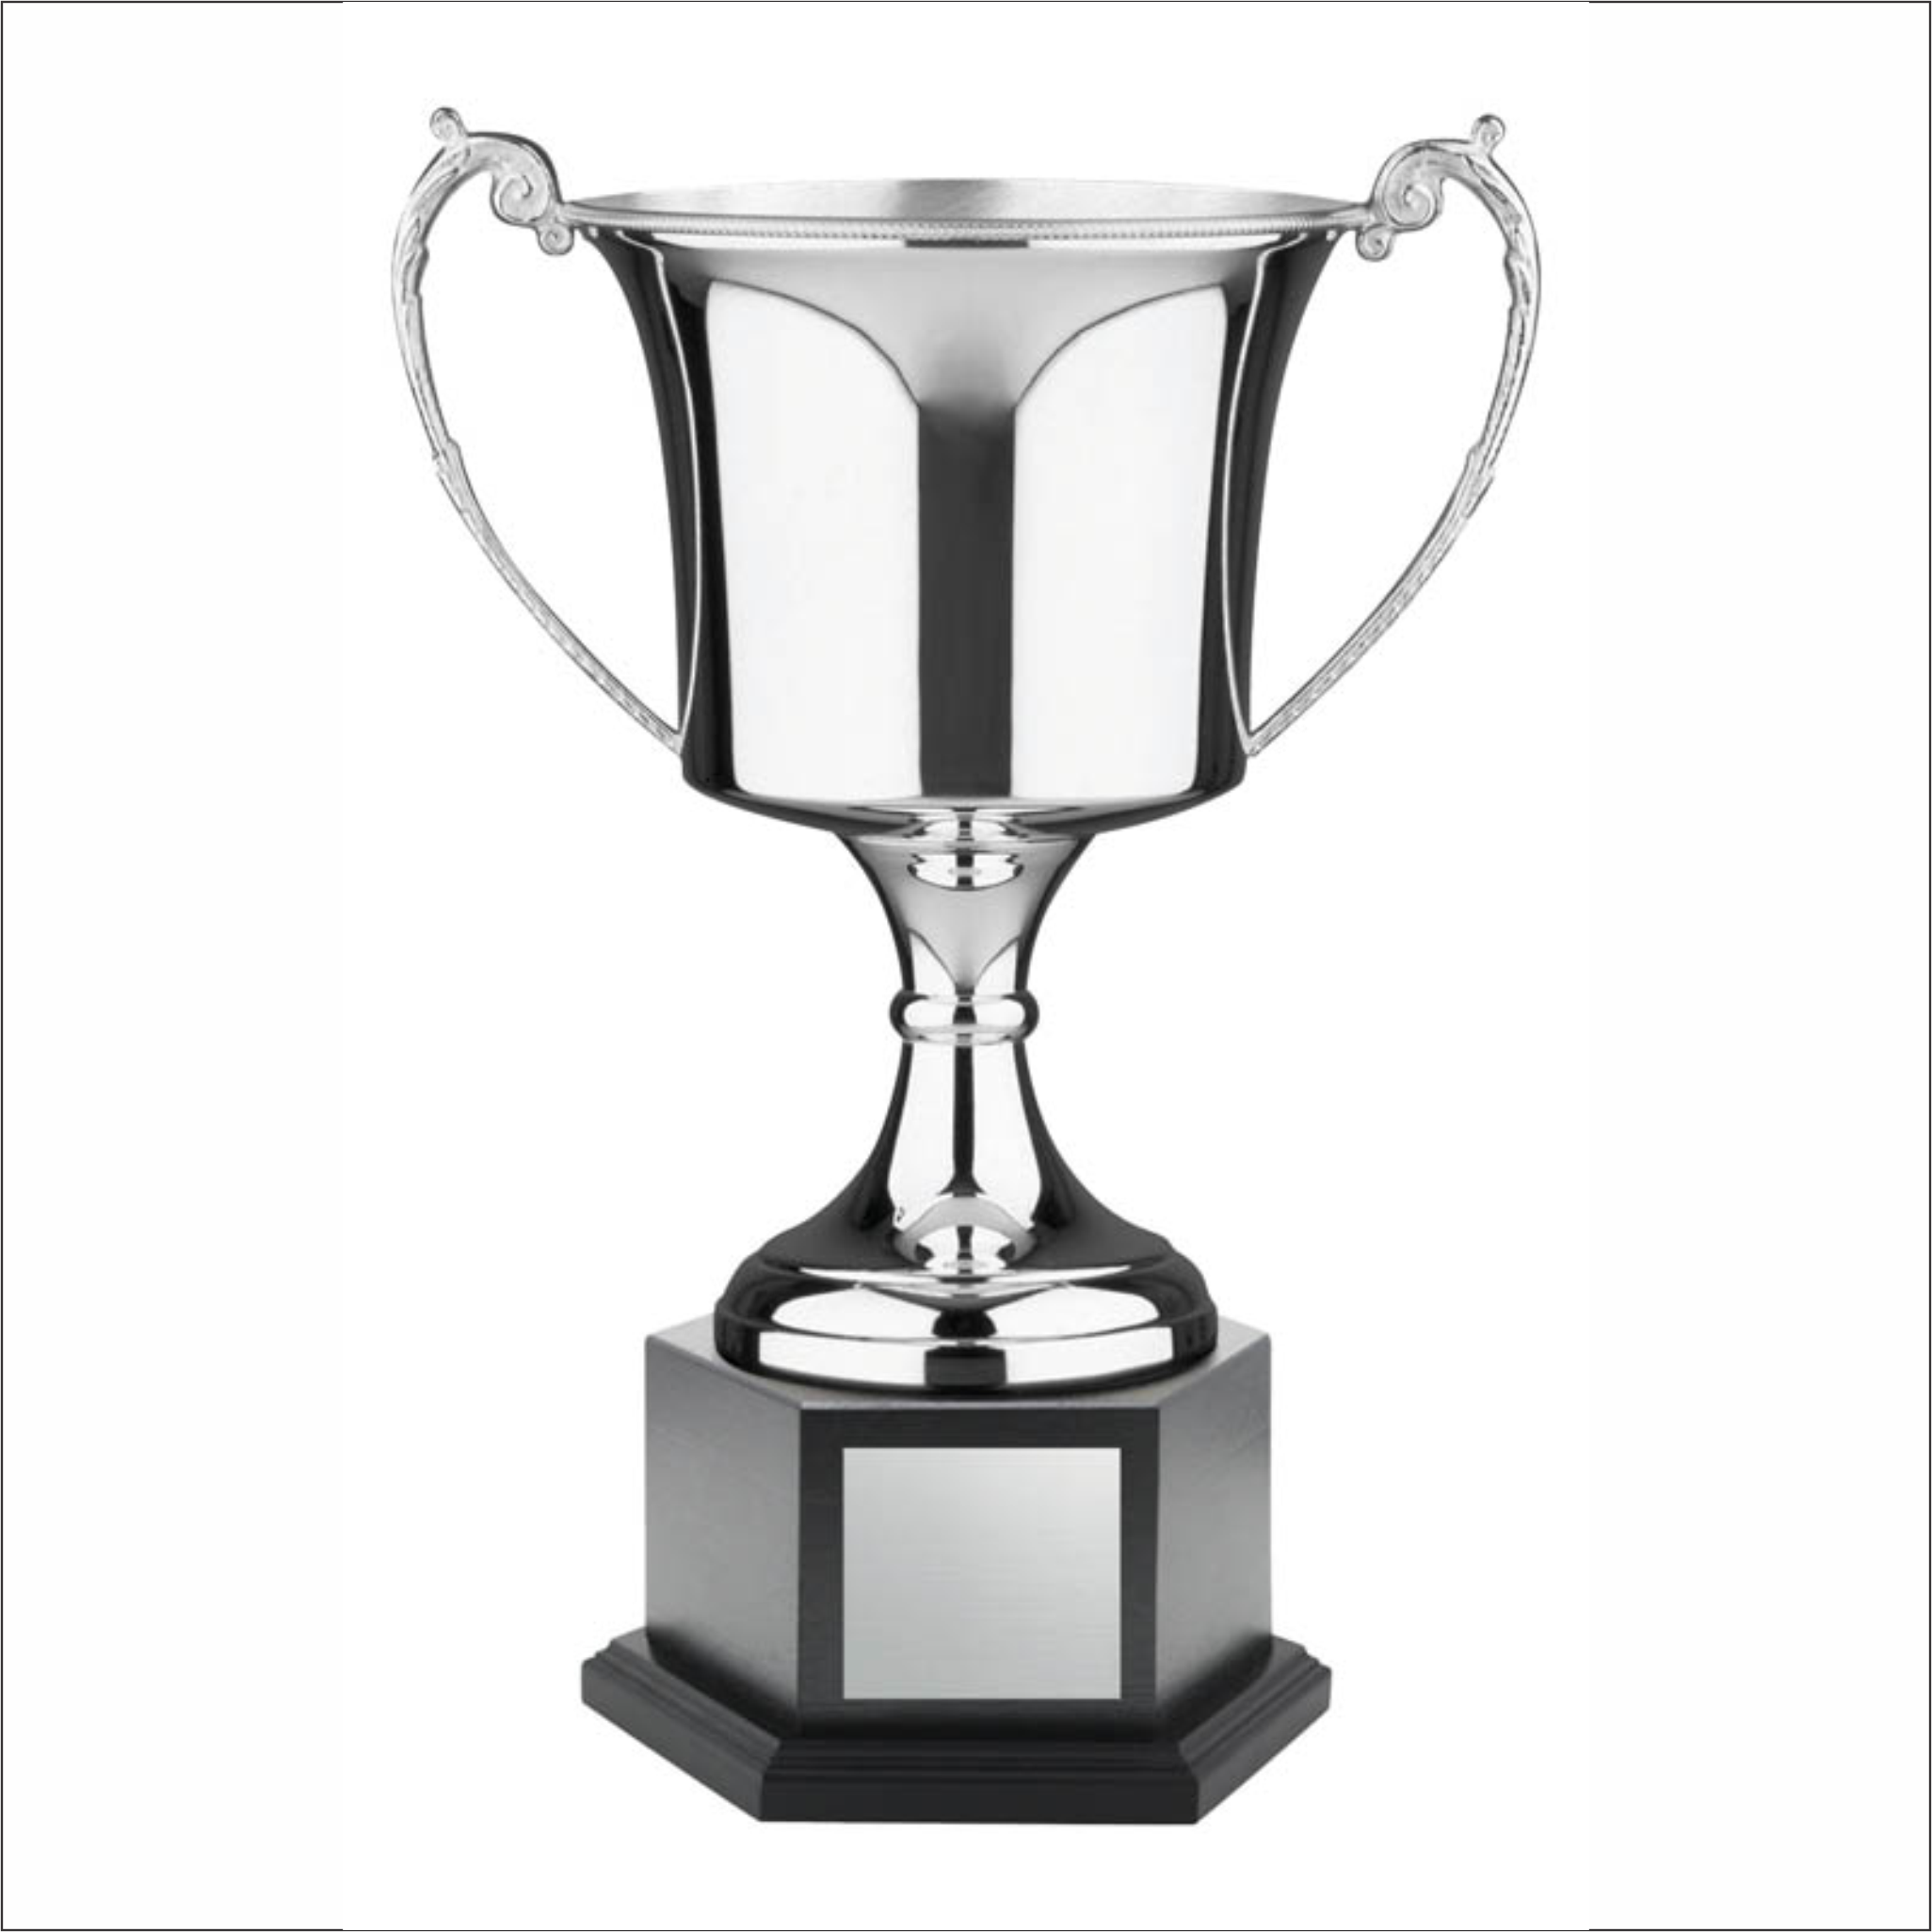 Nickel Plated Cup - Endurance - Hex Black Base